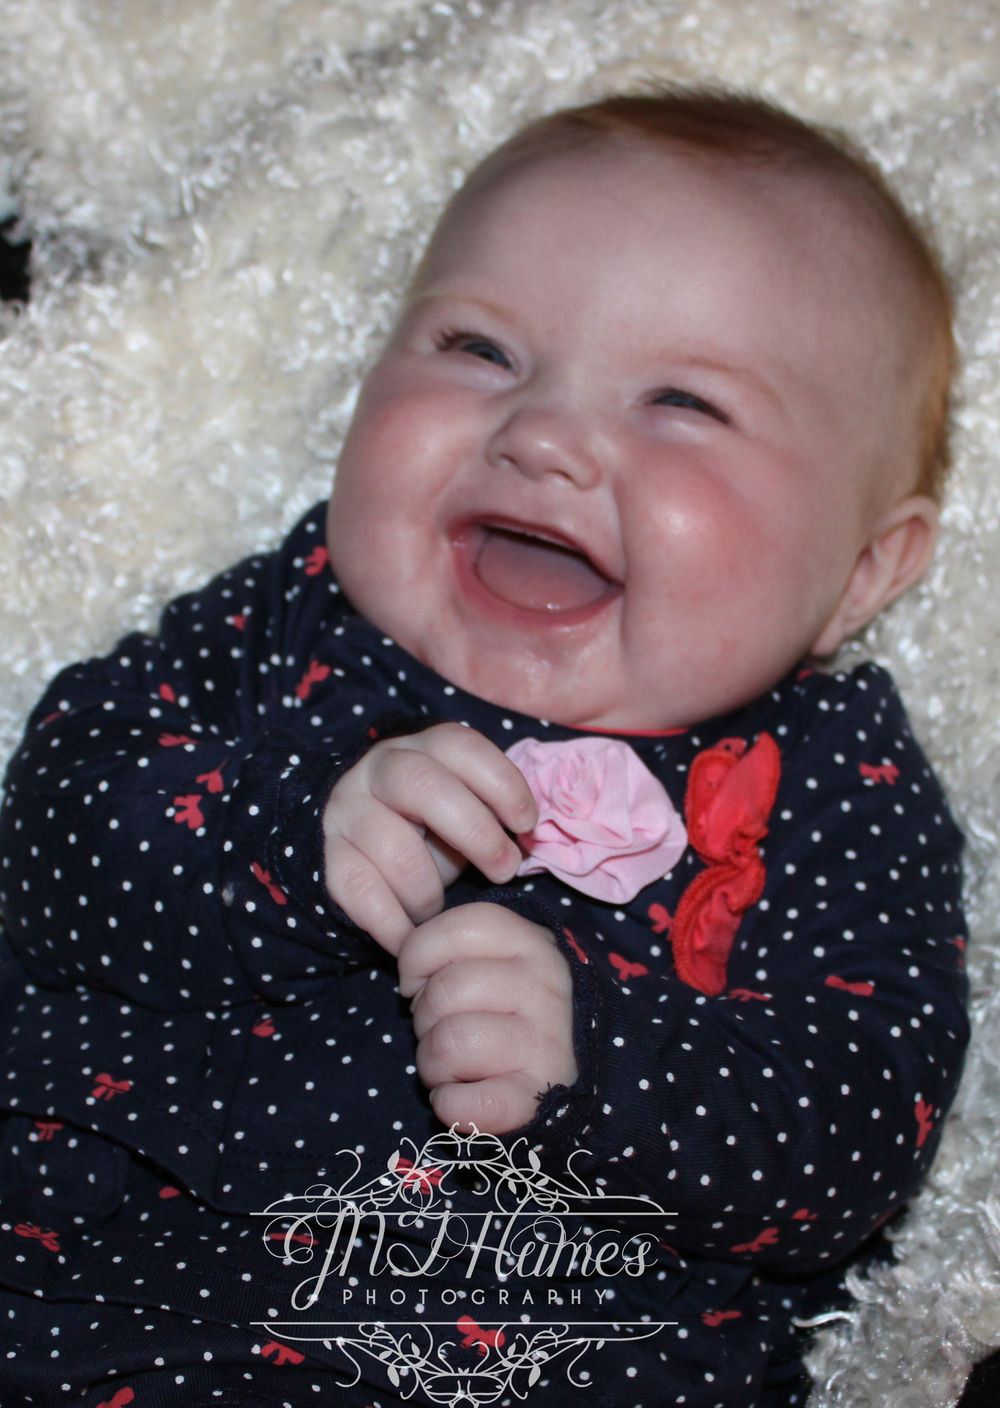 Lilly giggling like only a 4 month old can....